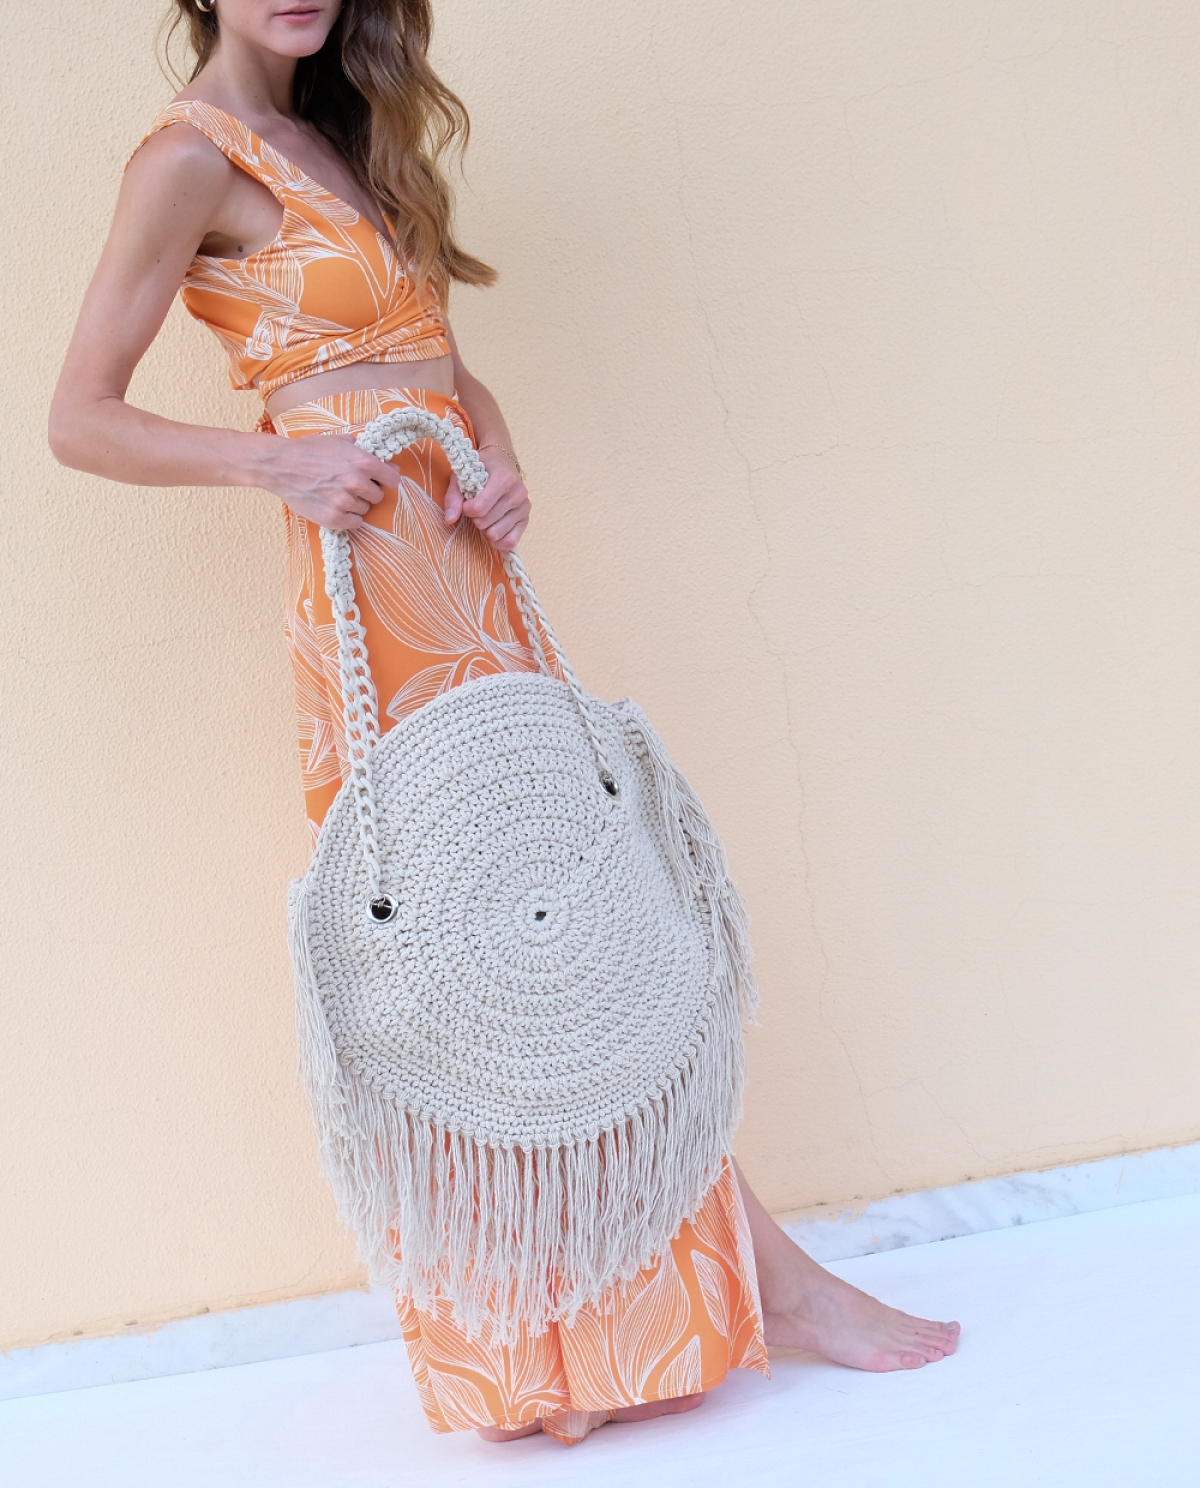 Milos Crocheted Shoulder Bag